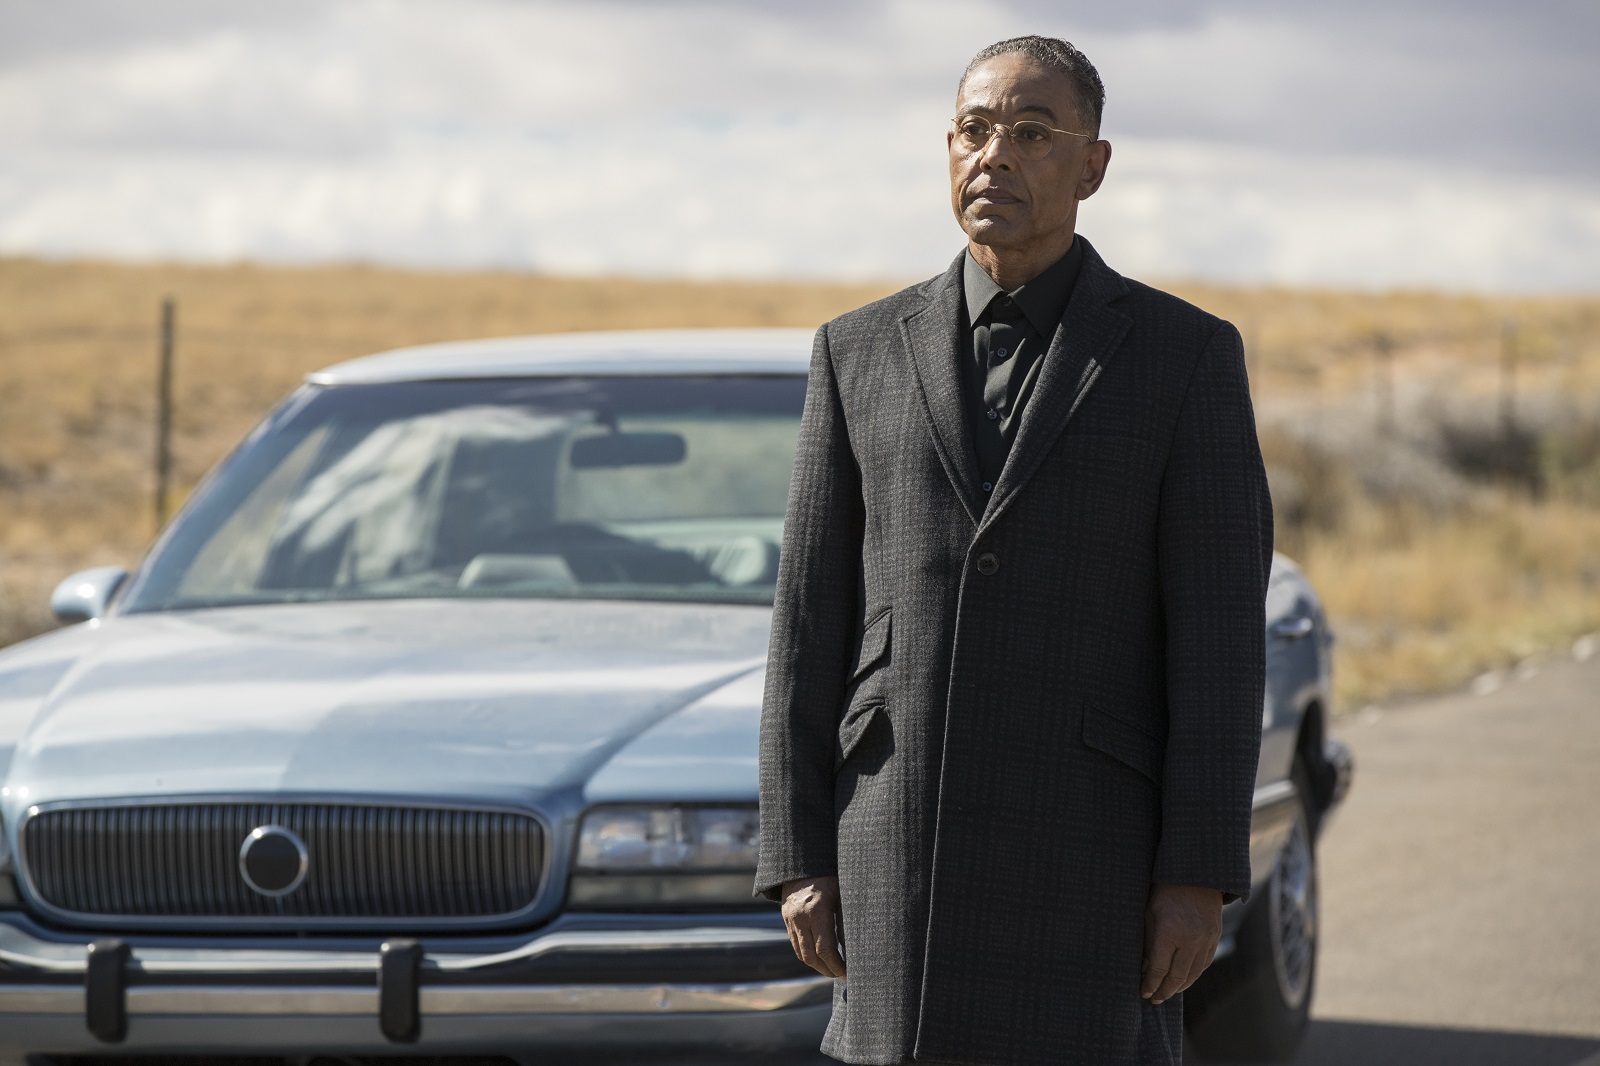 Better Call Saul explored the backstory of Breaking Bad character Gus Fring